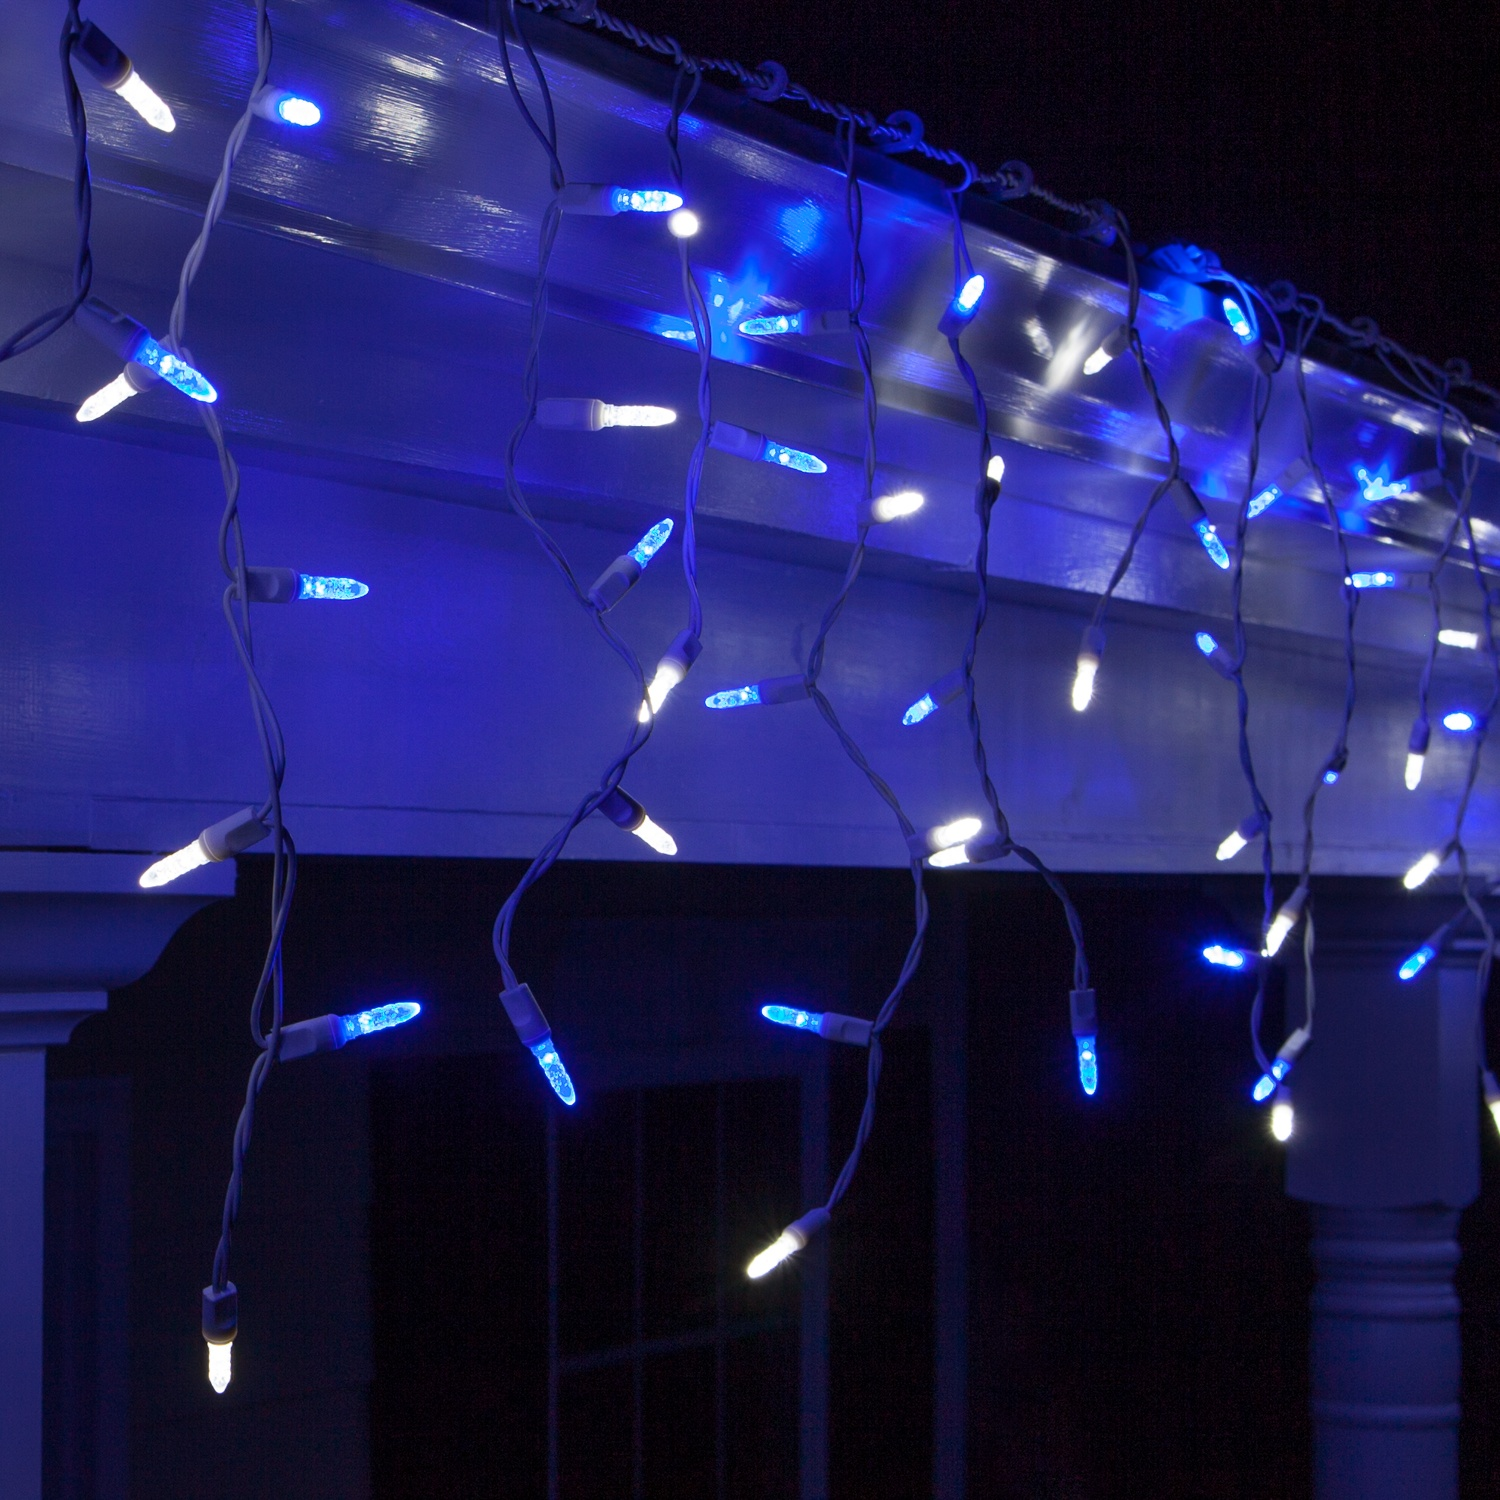 LED Christmas Lights - 70 M5 Blue and White LED Icicle Lights